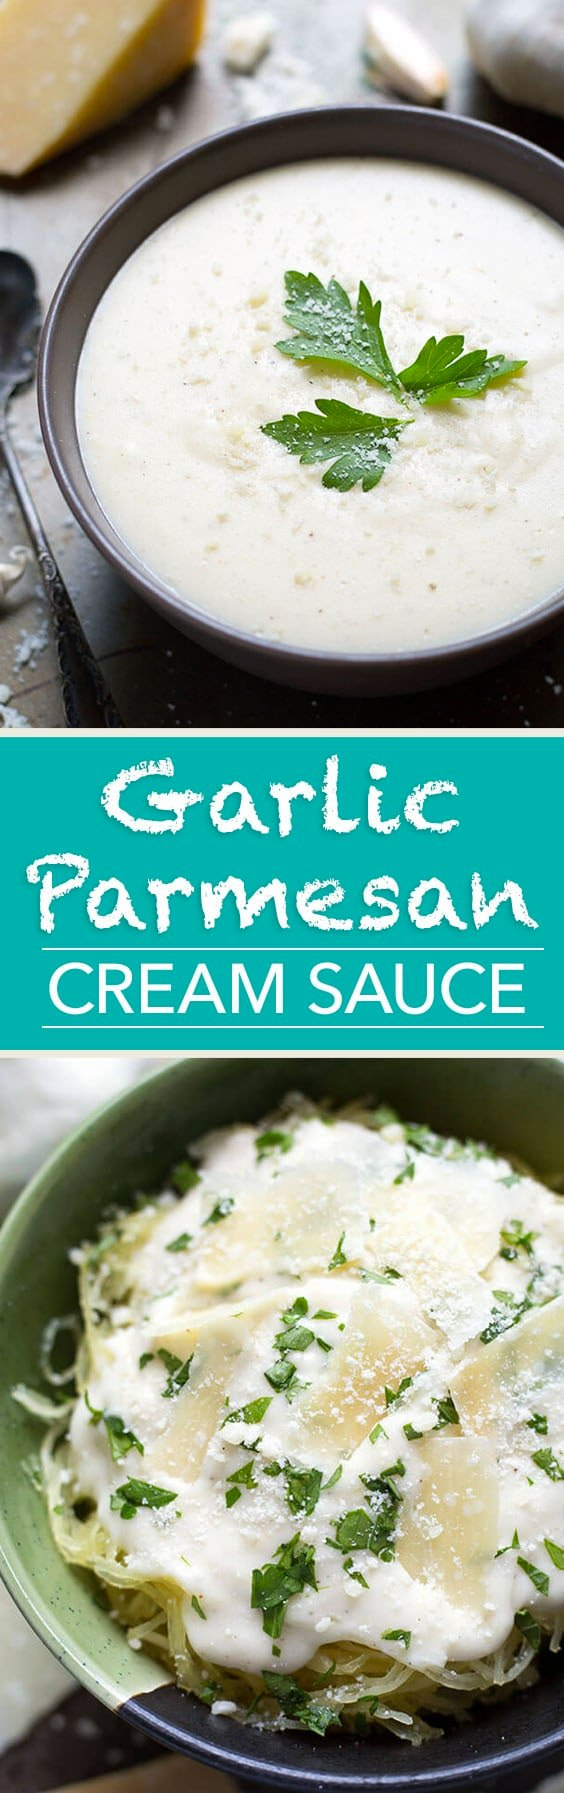 Garlic Parmesan Cream Sauce is a delicious and versatile sauce for pasta, spaghetti squash, rice, zoodles, vegetables. simplyhappyfoodie.com #zoodles #garlicparmesancreamsauce #creamsauce